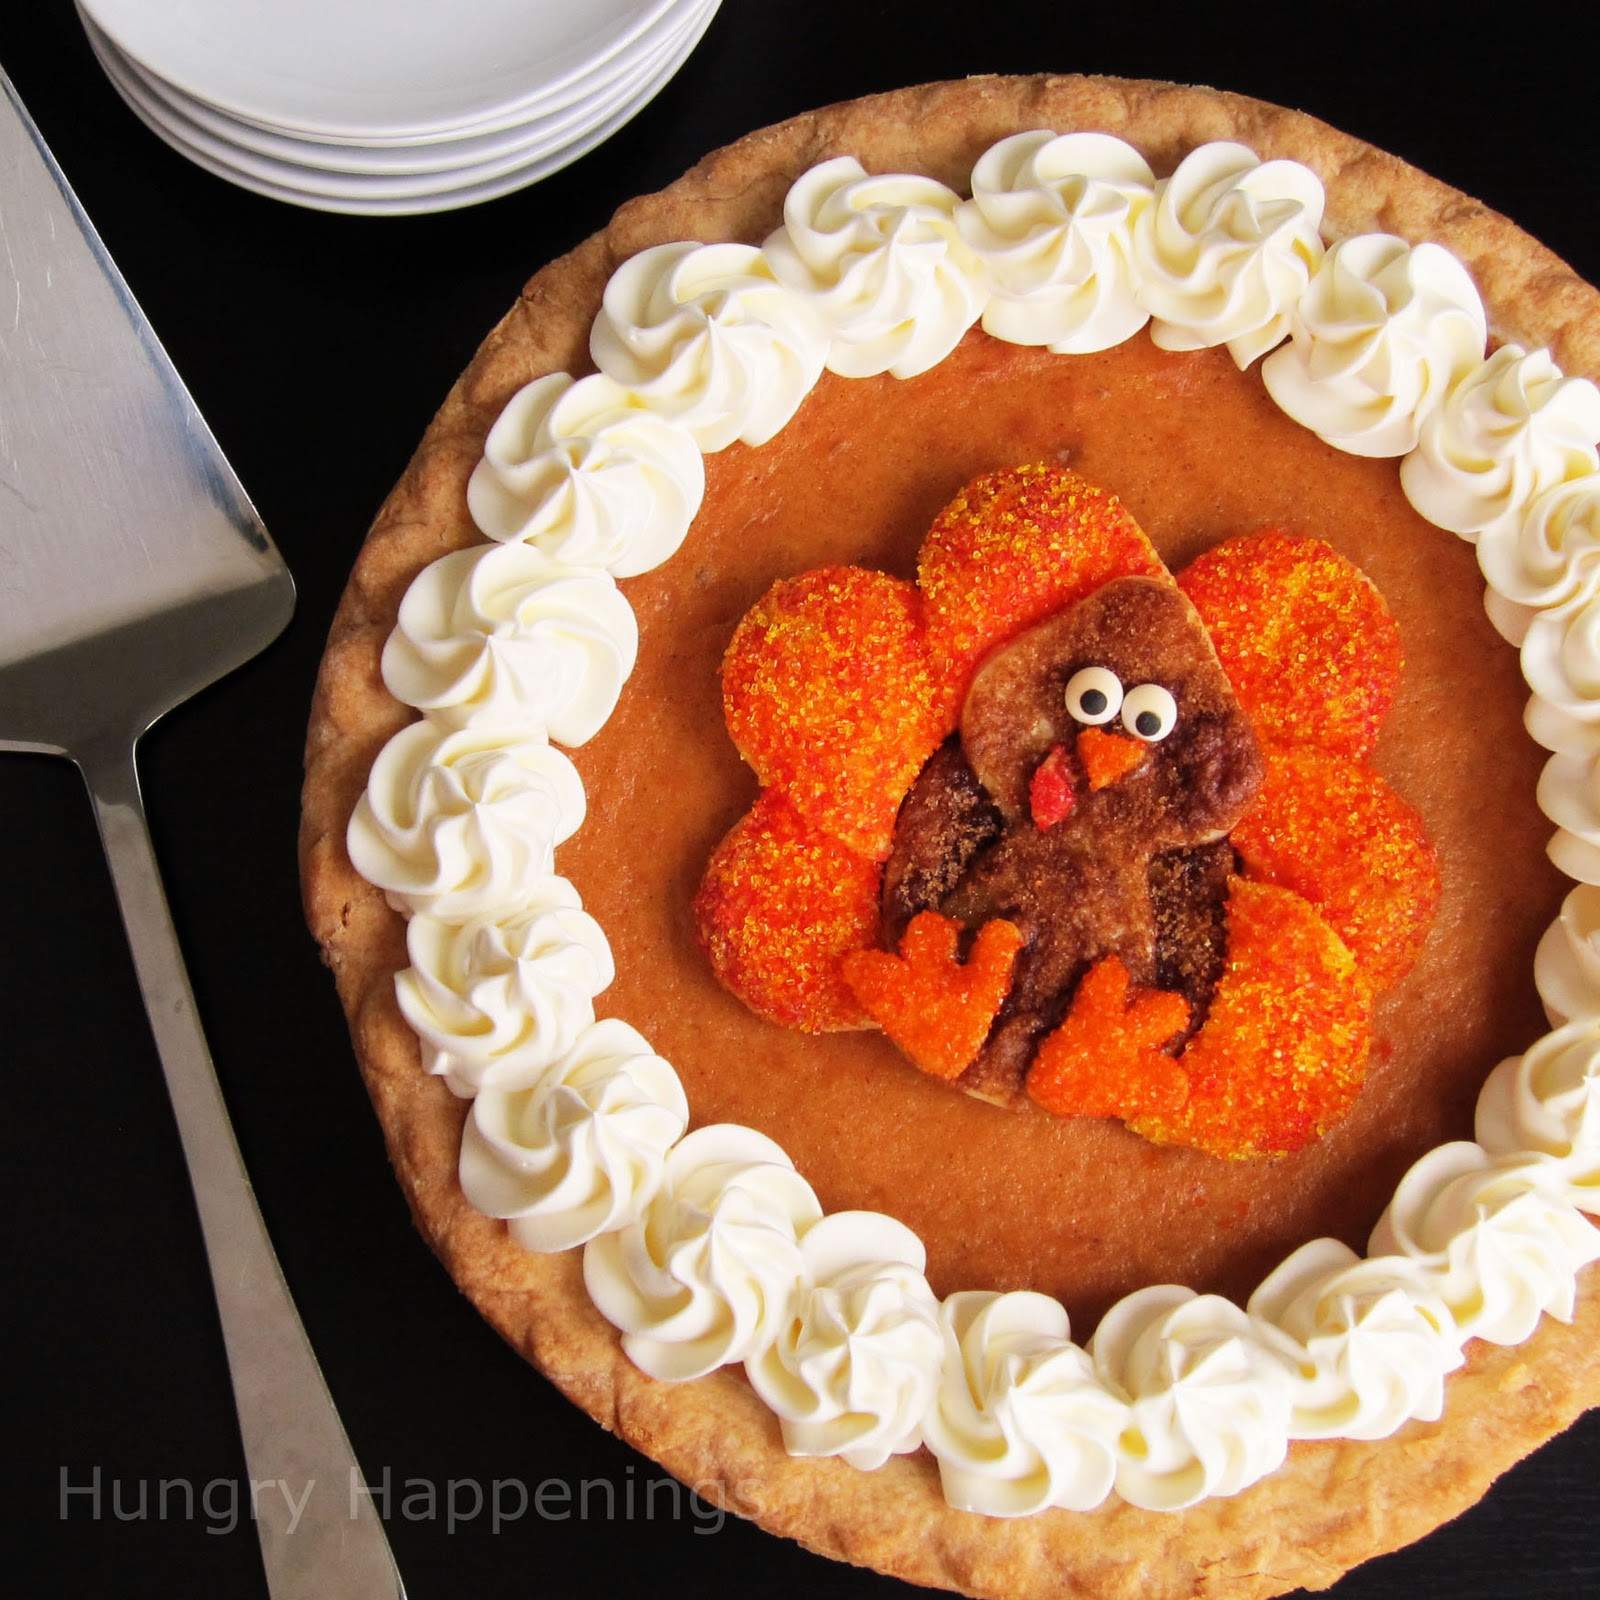 Thanksgiving Pumpkin Pie  Decorated Pumpkin Pie Festive Thanksgiving Dessert